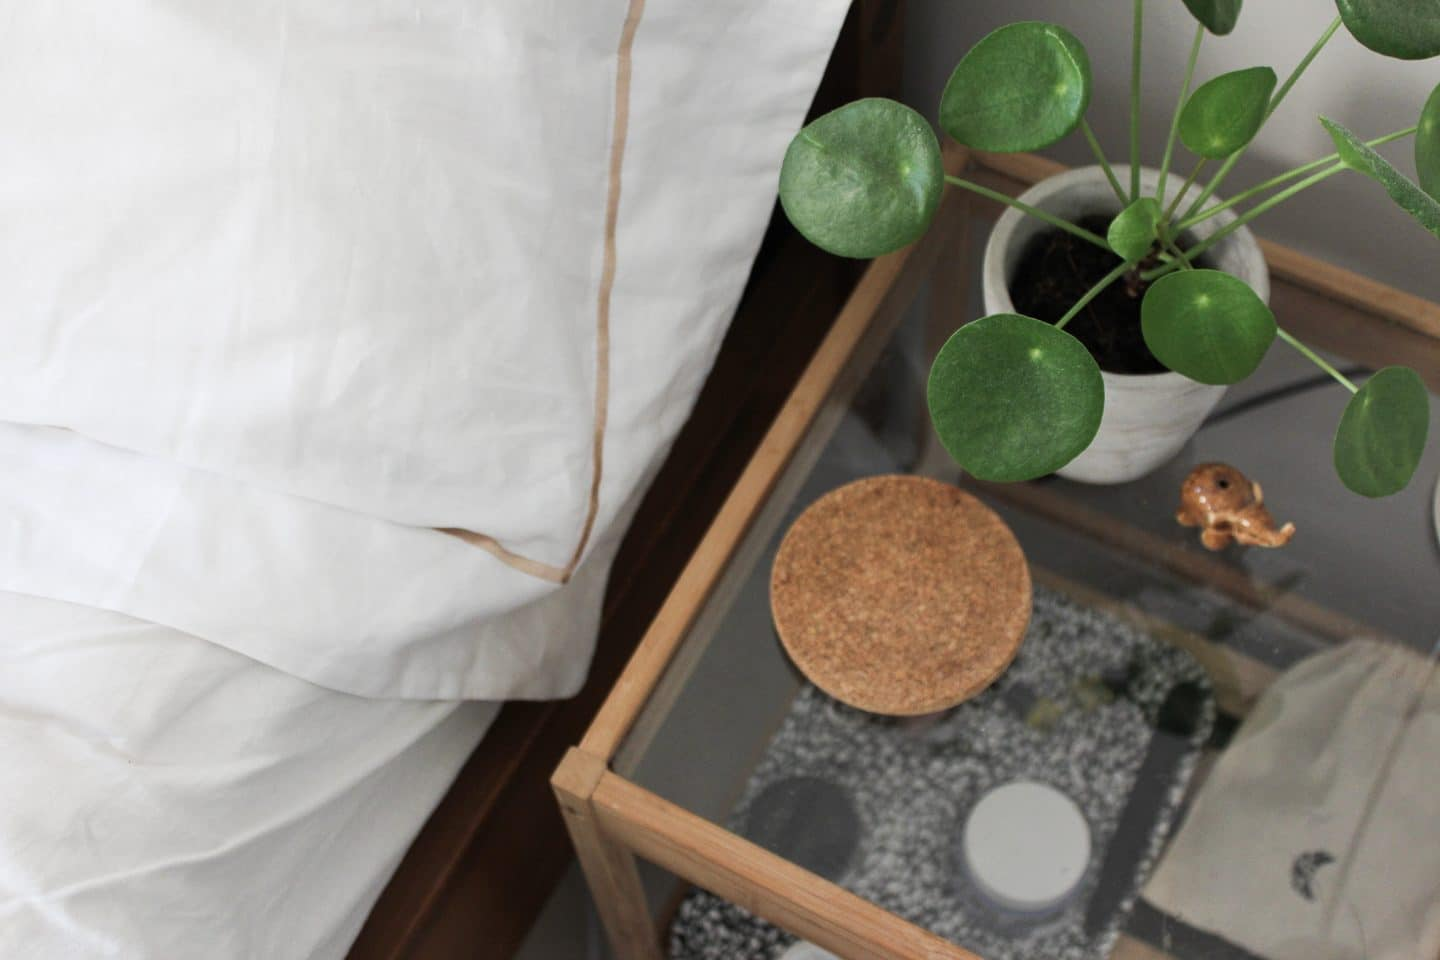 Pillow next to bedside table decorated with plant and cork coaster